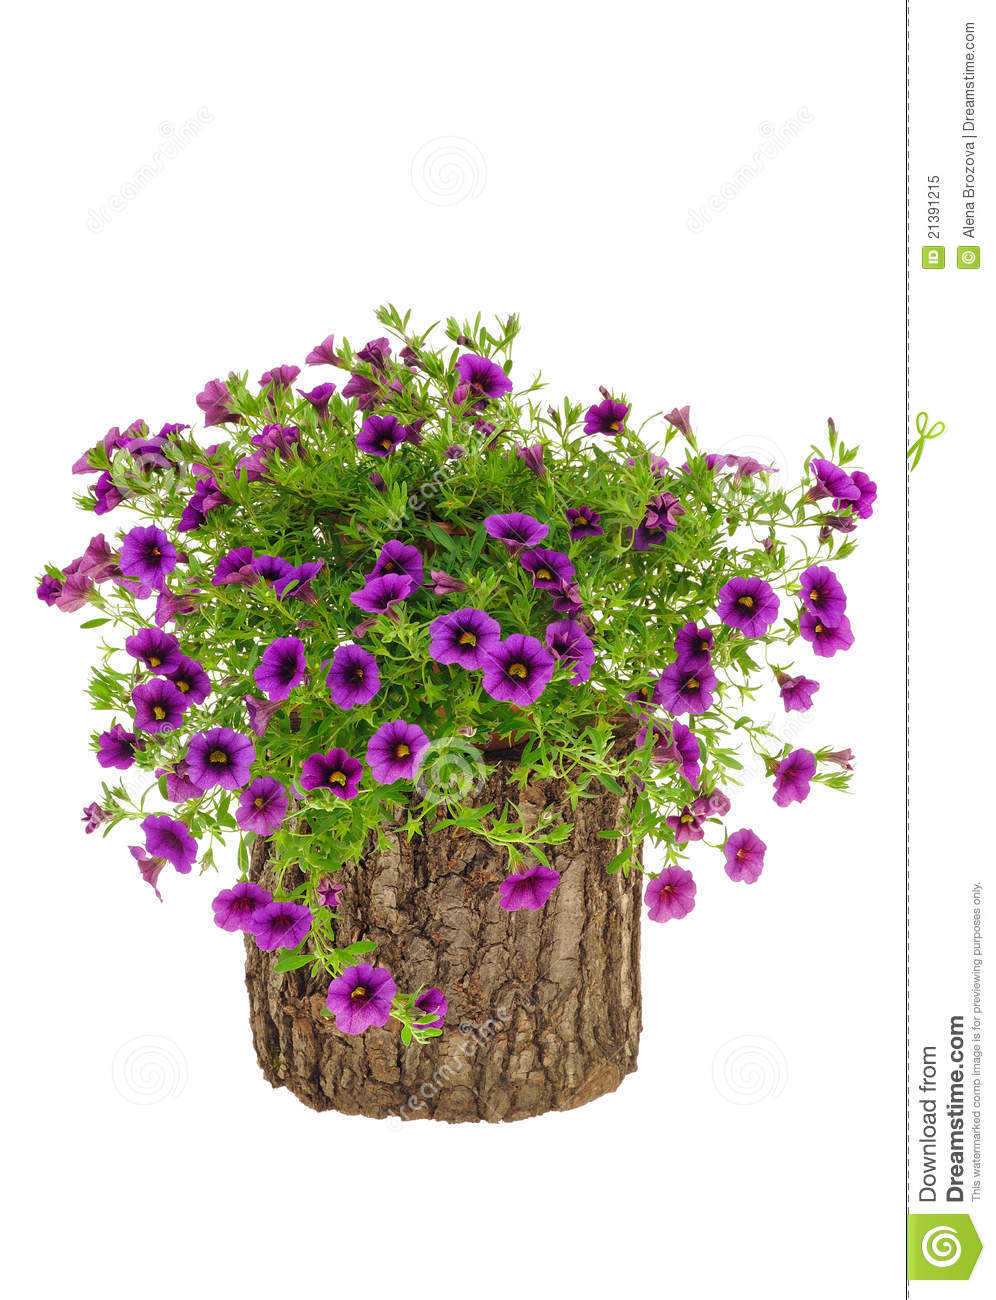 Petunia surfinia flowers on tree trunk over white royalty for Petunia surfinia